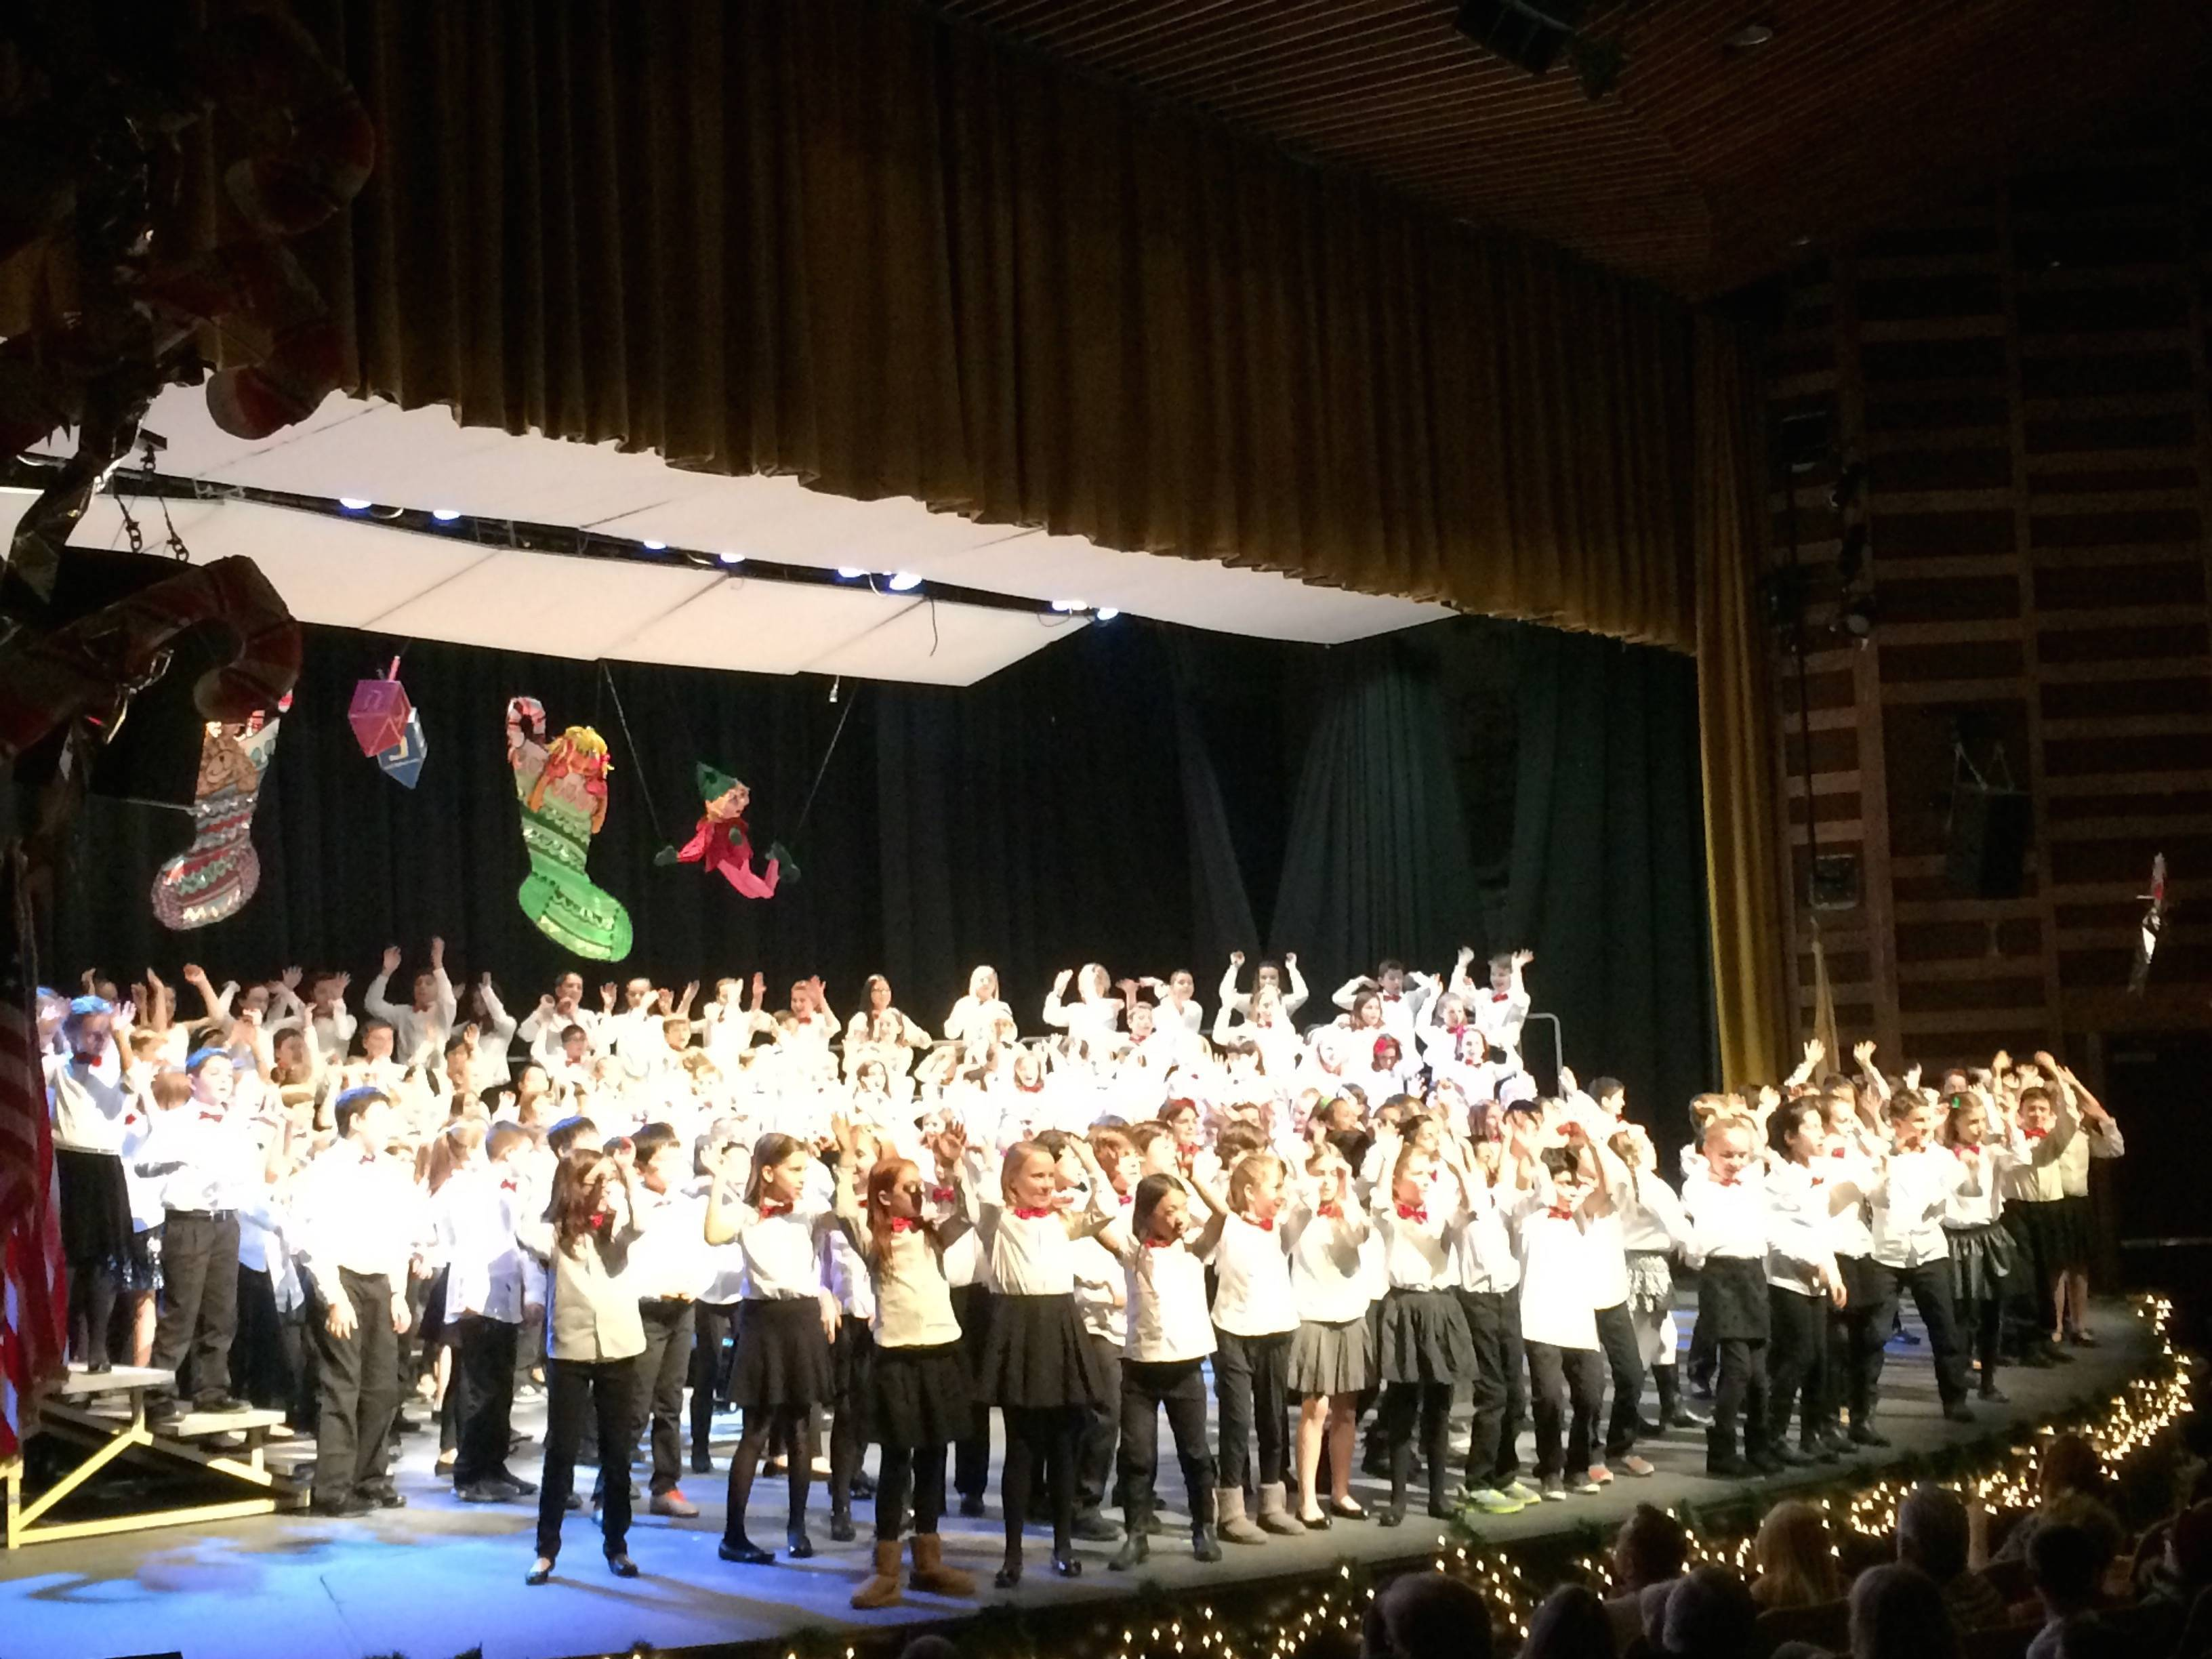 78813782d45d827d2778_The_5th_grade_performers_join_together_for_the_finale__their_performance_of__Santa_Claus_Boogie__under_the_direction_of_Dean_Kravitz.jpg